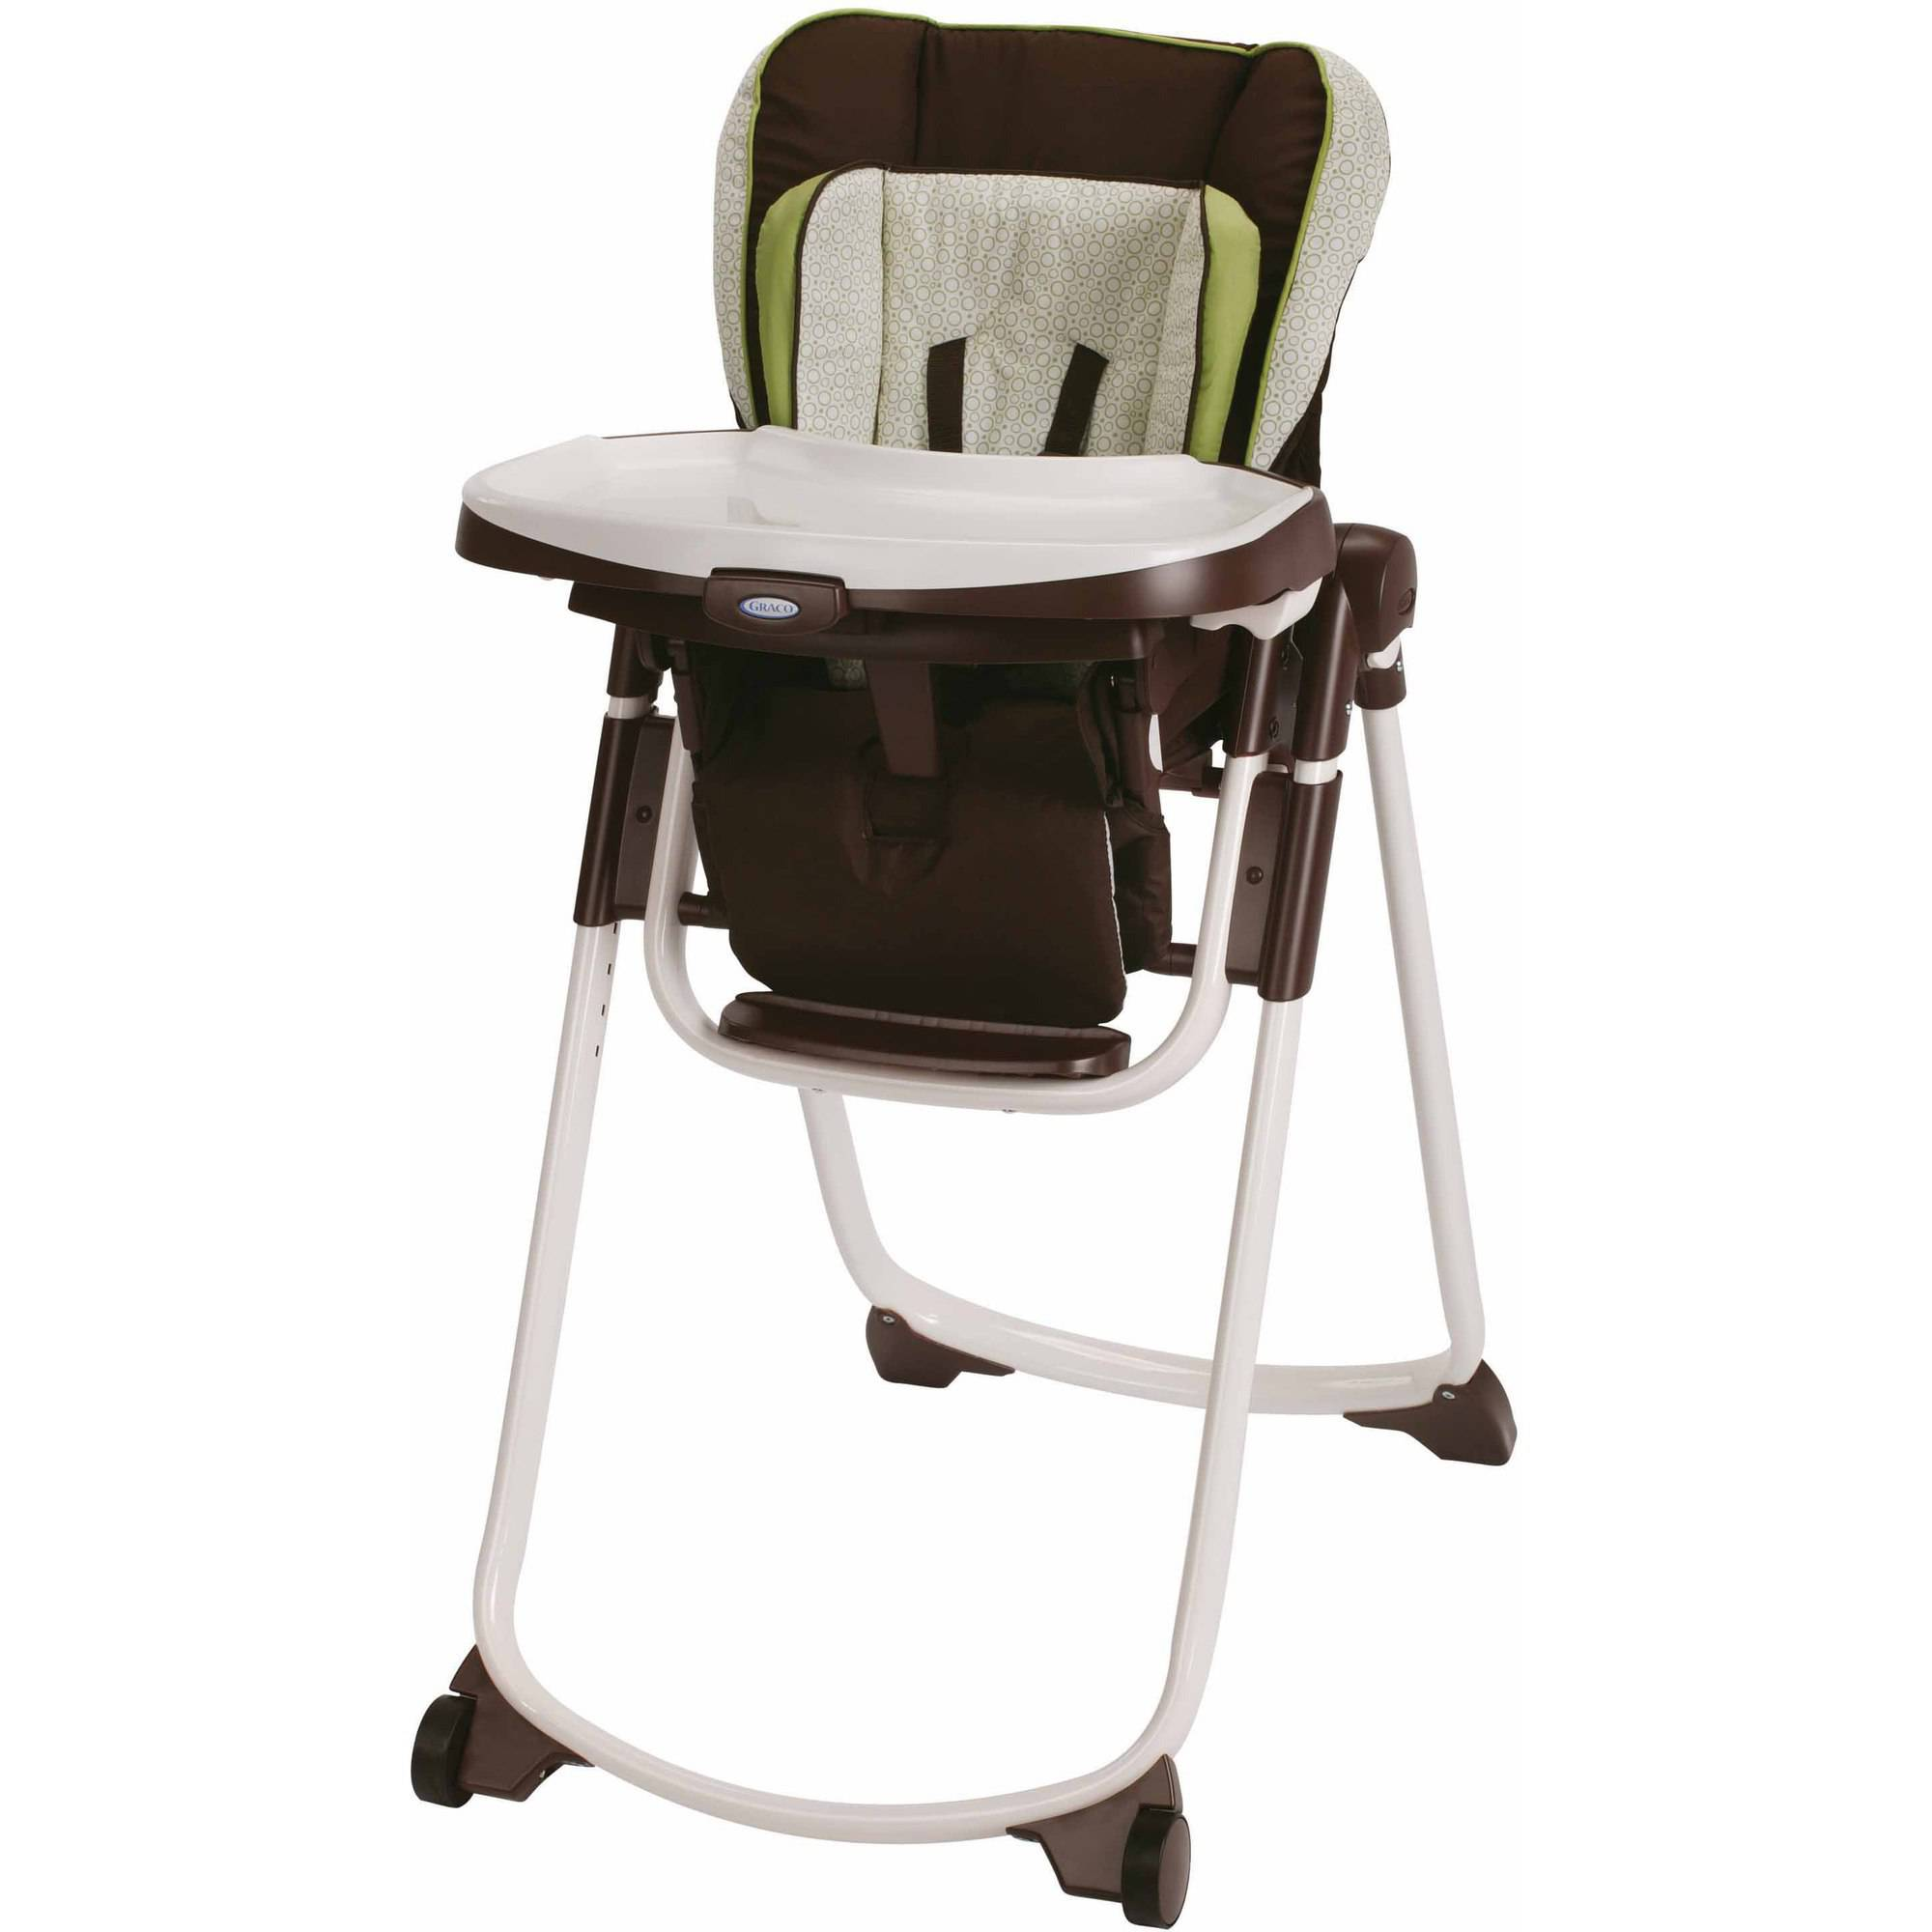 Graco Slim Spaces Space Saver High Chair, Go Green